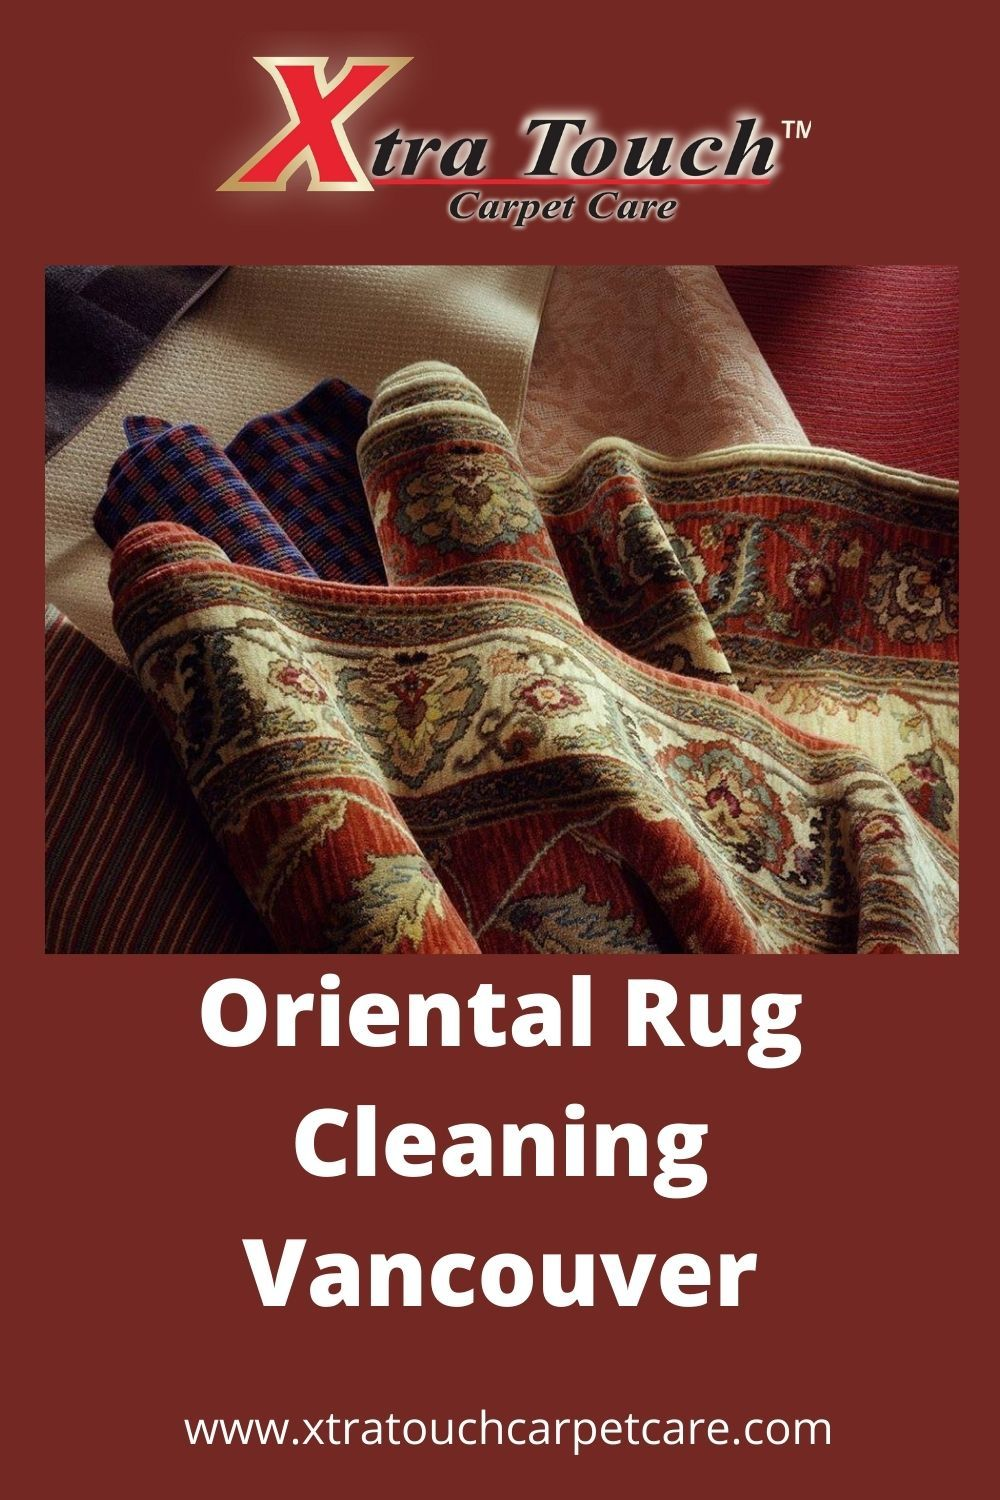 Rugs are one of the most preferred flooring options in the home because of their warmth and style. However, considering the various activities that take place every day at home, it is certainly not possible to keep the rugs in good shape. An oriental rug needs to be cleaned using the best techniques which only a professional rug cleaner can provide.  #rugcleaning #orientalrugcleaning #orientalrugcleaningservice #orientalrugcleaningvancouver